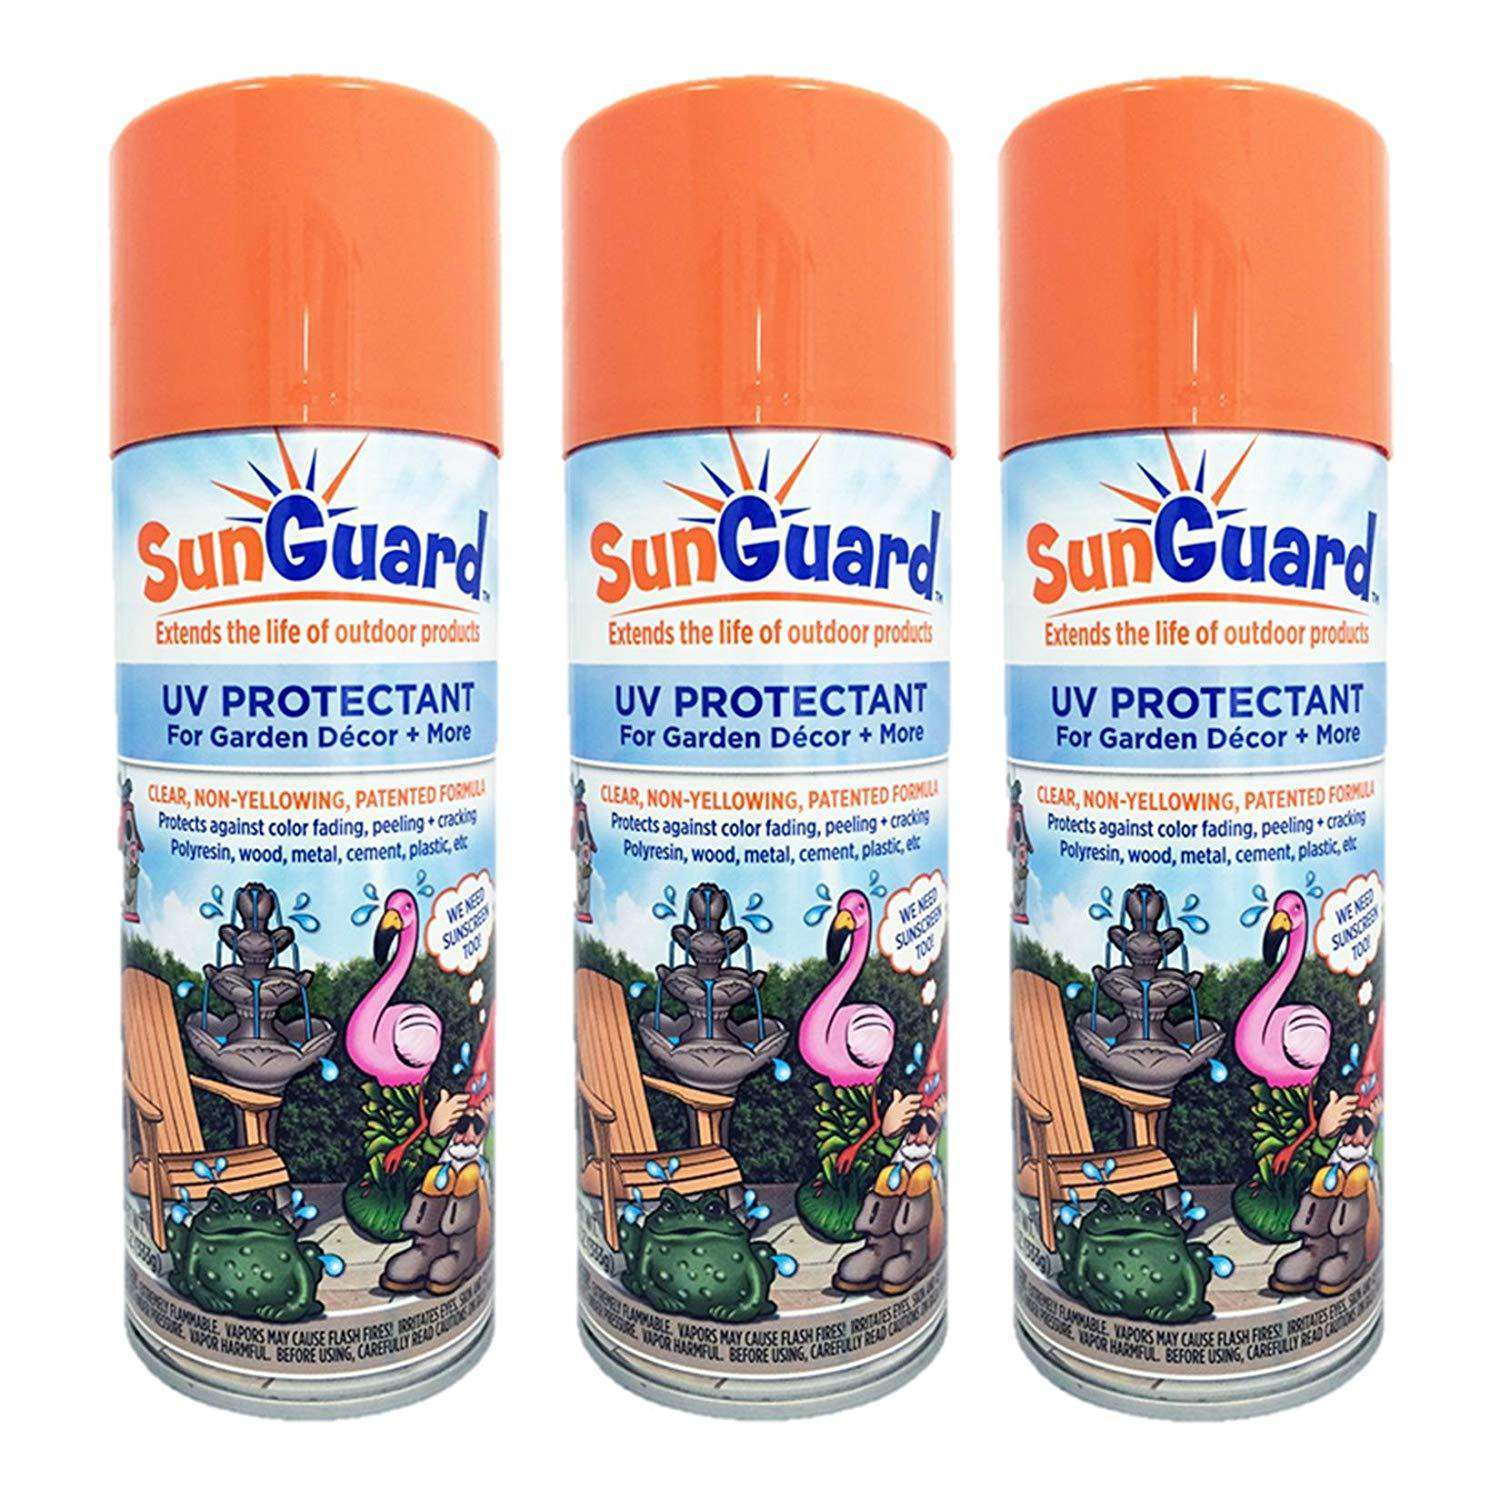 SunGuard UV Protectant for Outdoor Decor/Furniture